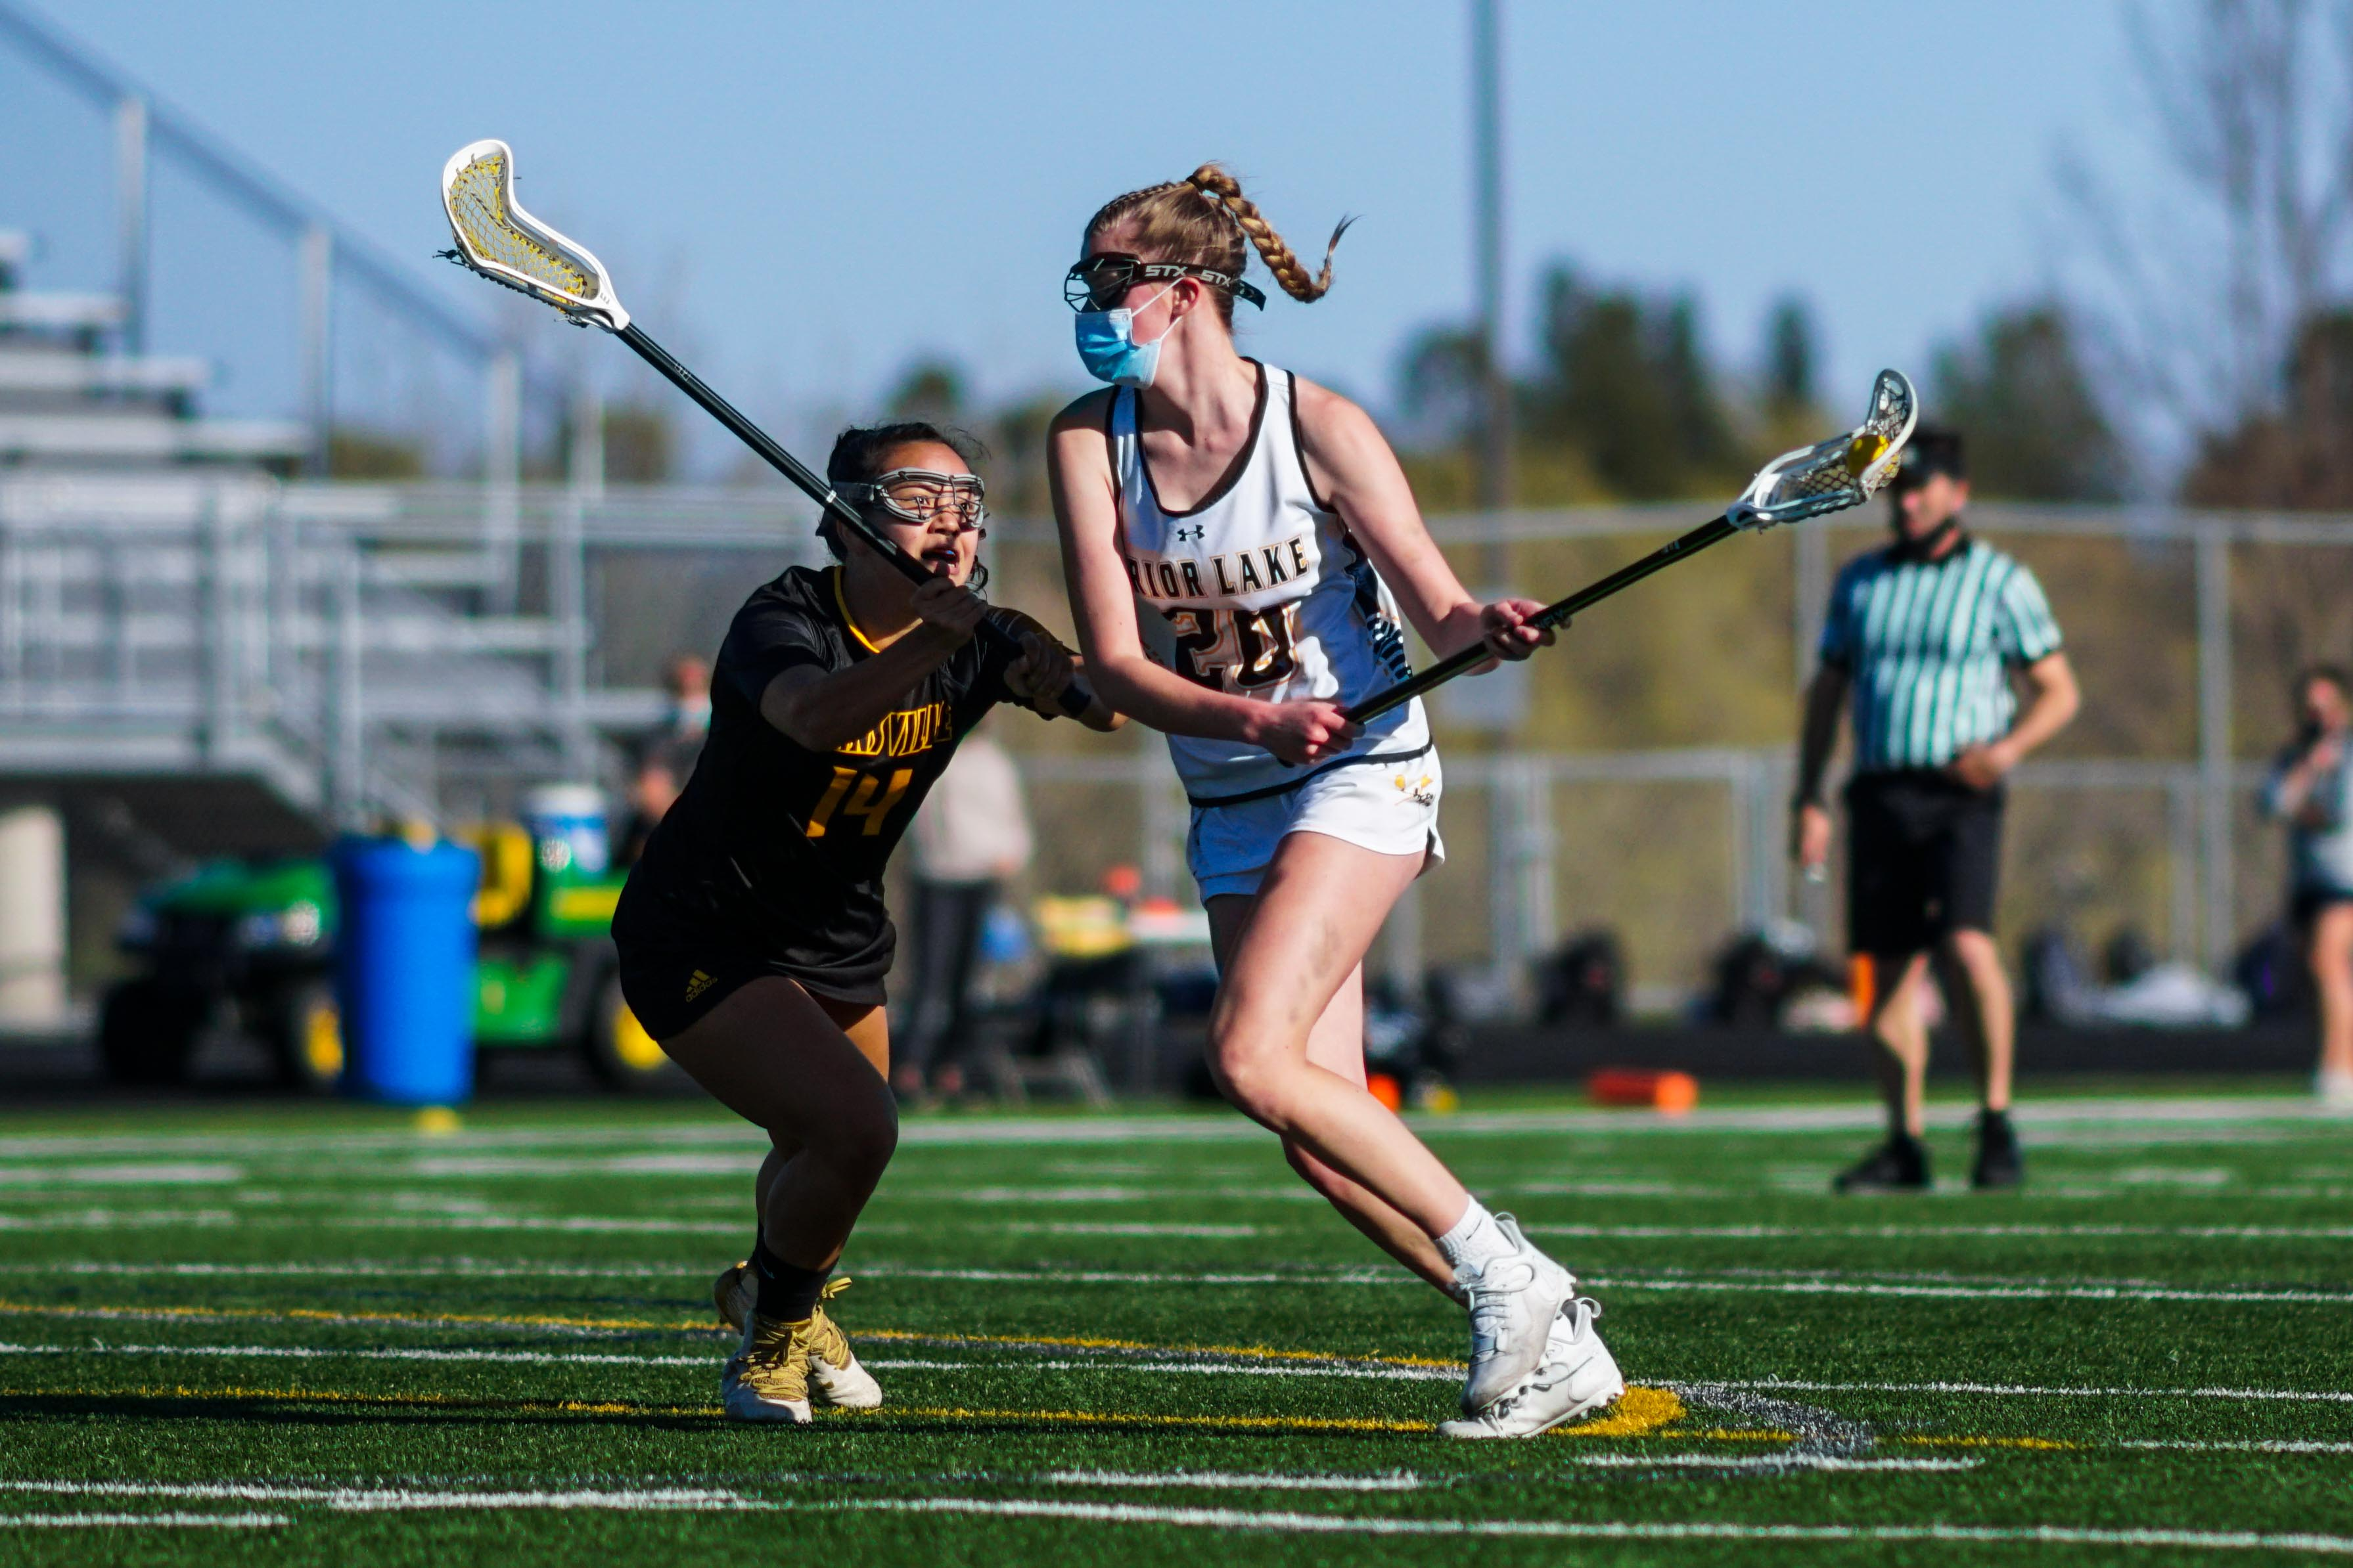 Prior Lake's Payton Bloedow (20) tied teammate Ava Schiltz with a game-high four goals in a convincing 16-3 victory over Apple Valley/Burnsville Thursday night. Photo by Korey McDermott, SportsEngine